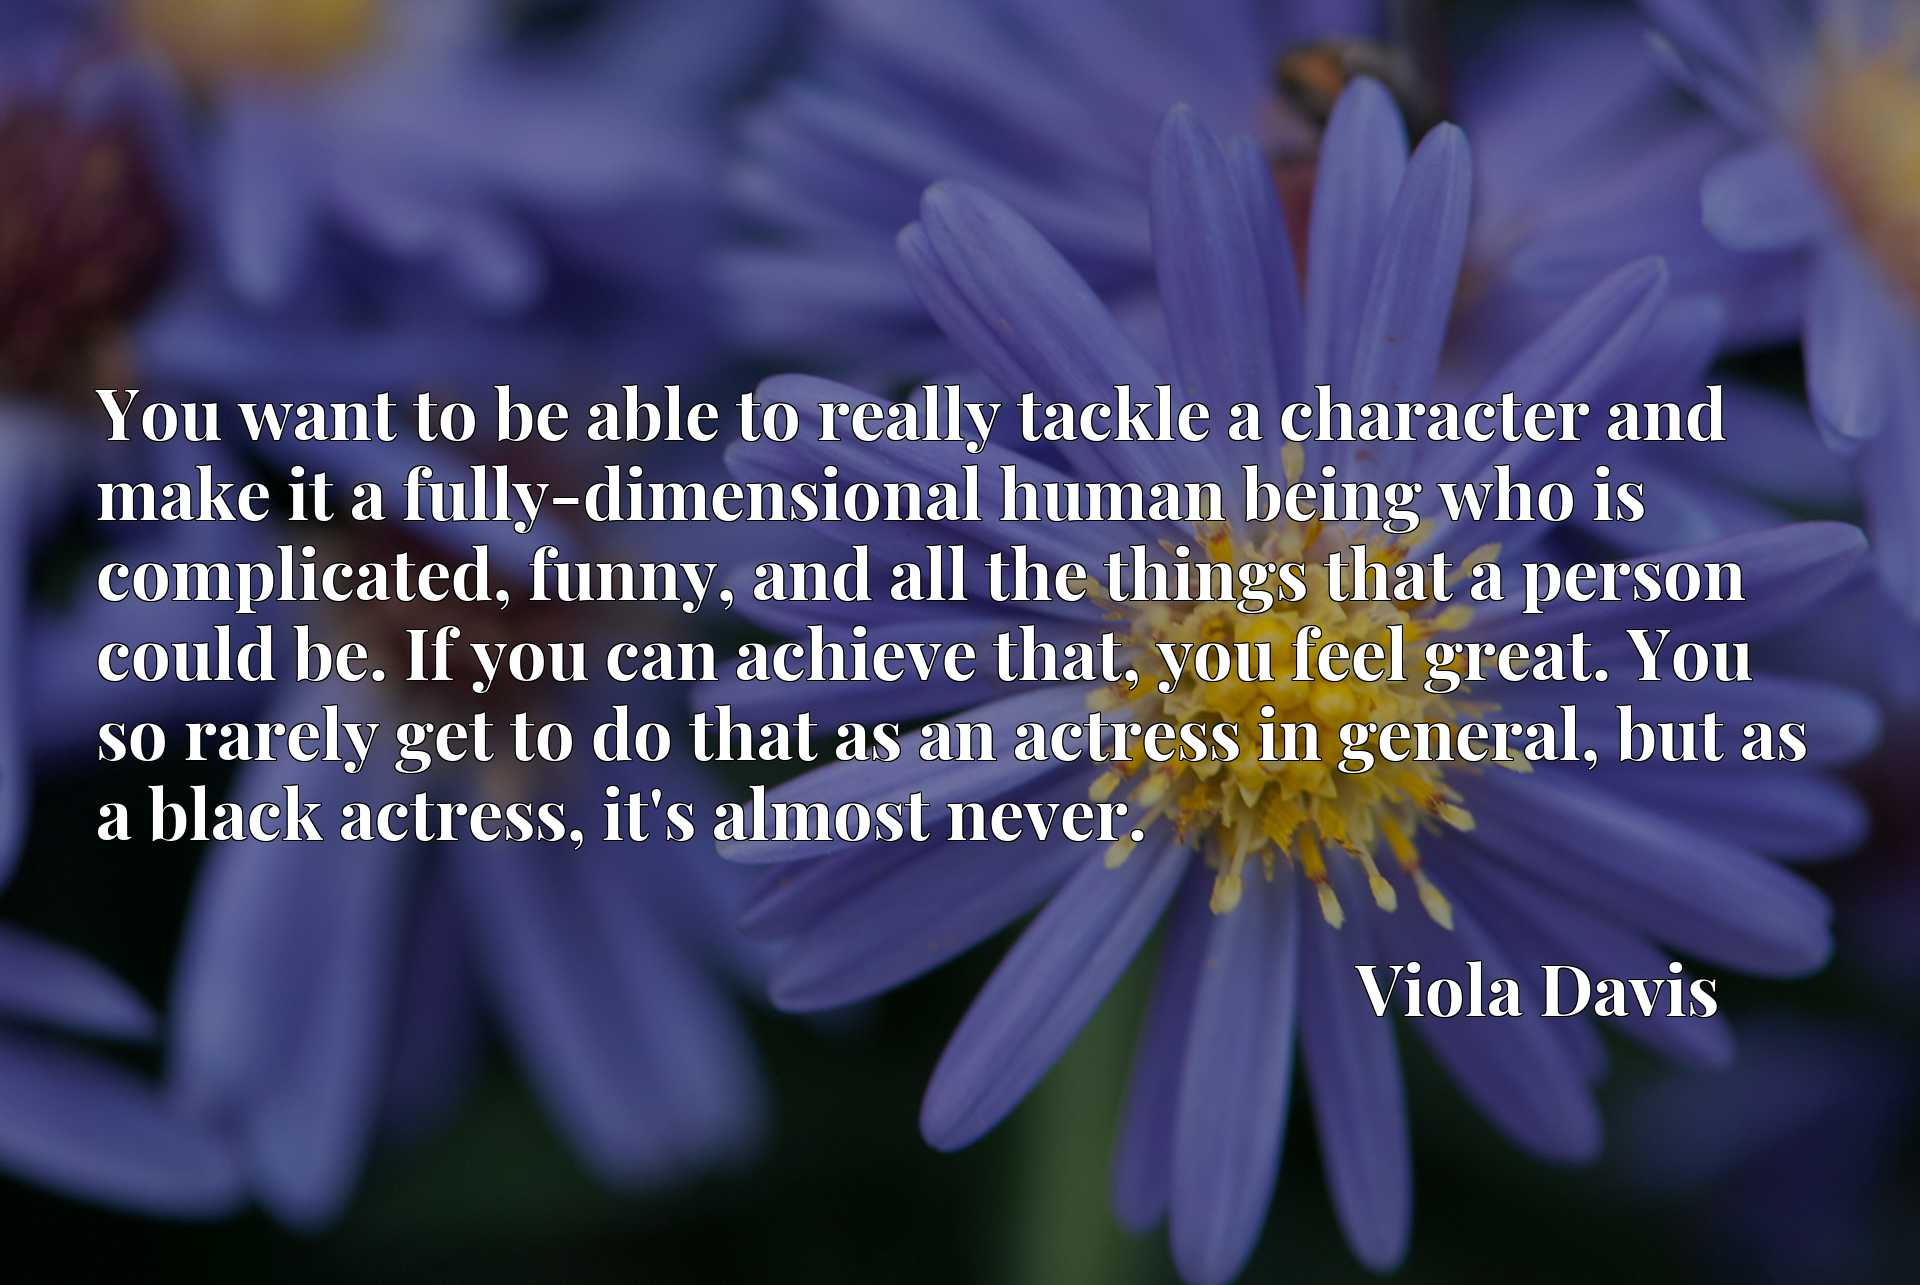 You want to be able to really tackle a character and make it a fully-dimensional human being who is complicated, funny, and all the things that a person could be. If you can achieve that, you feel great. You so rarely get to do that as an actress in general, but as a black actress, it's almost never.